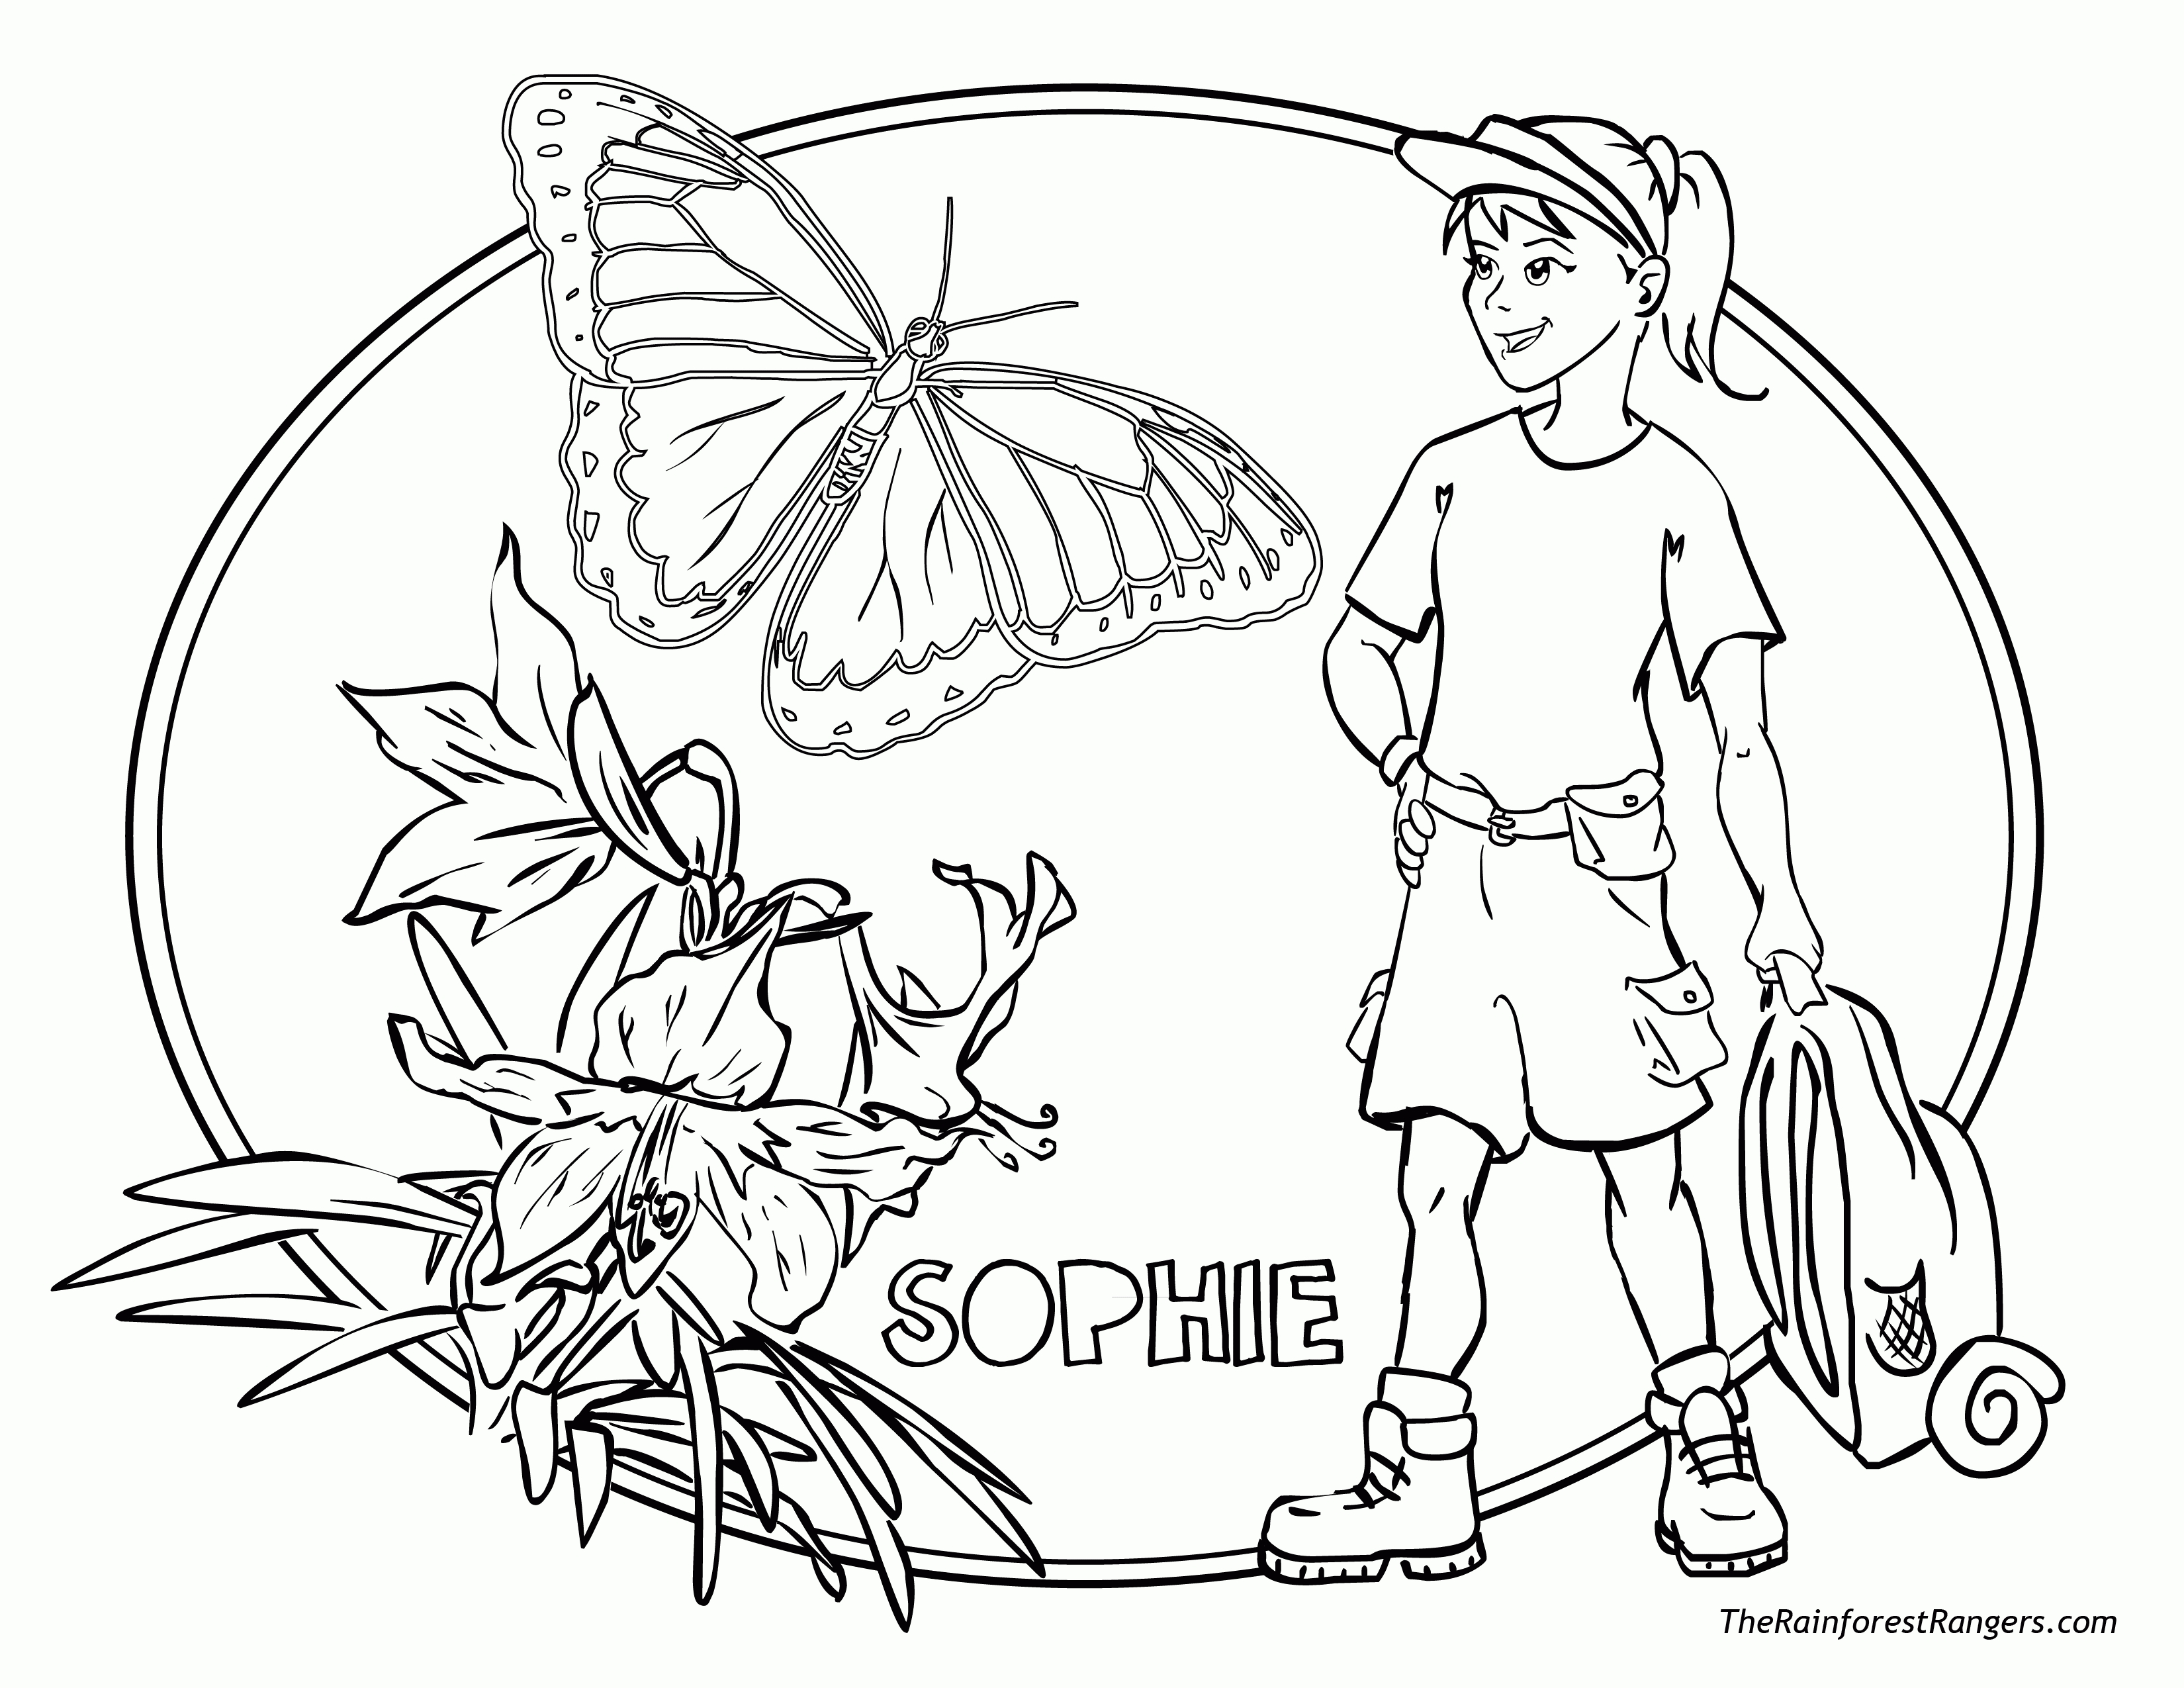 tropical coloring pages - tropical rainforests coloring pages